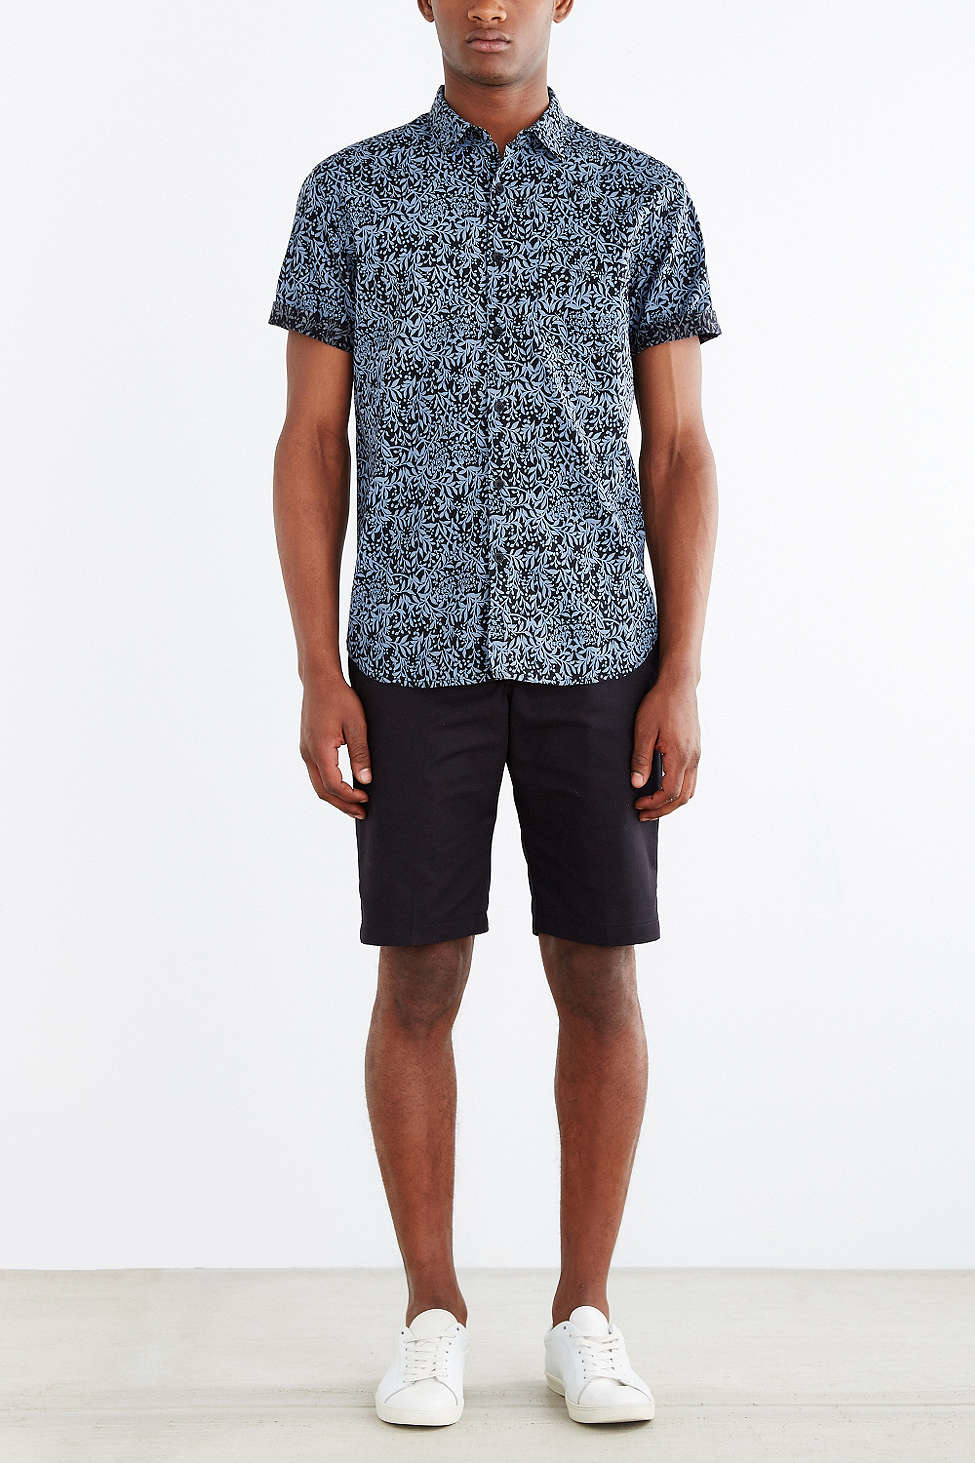 Lyst - Your neighbors Short-sleeve Kieran Printed Button-down ...